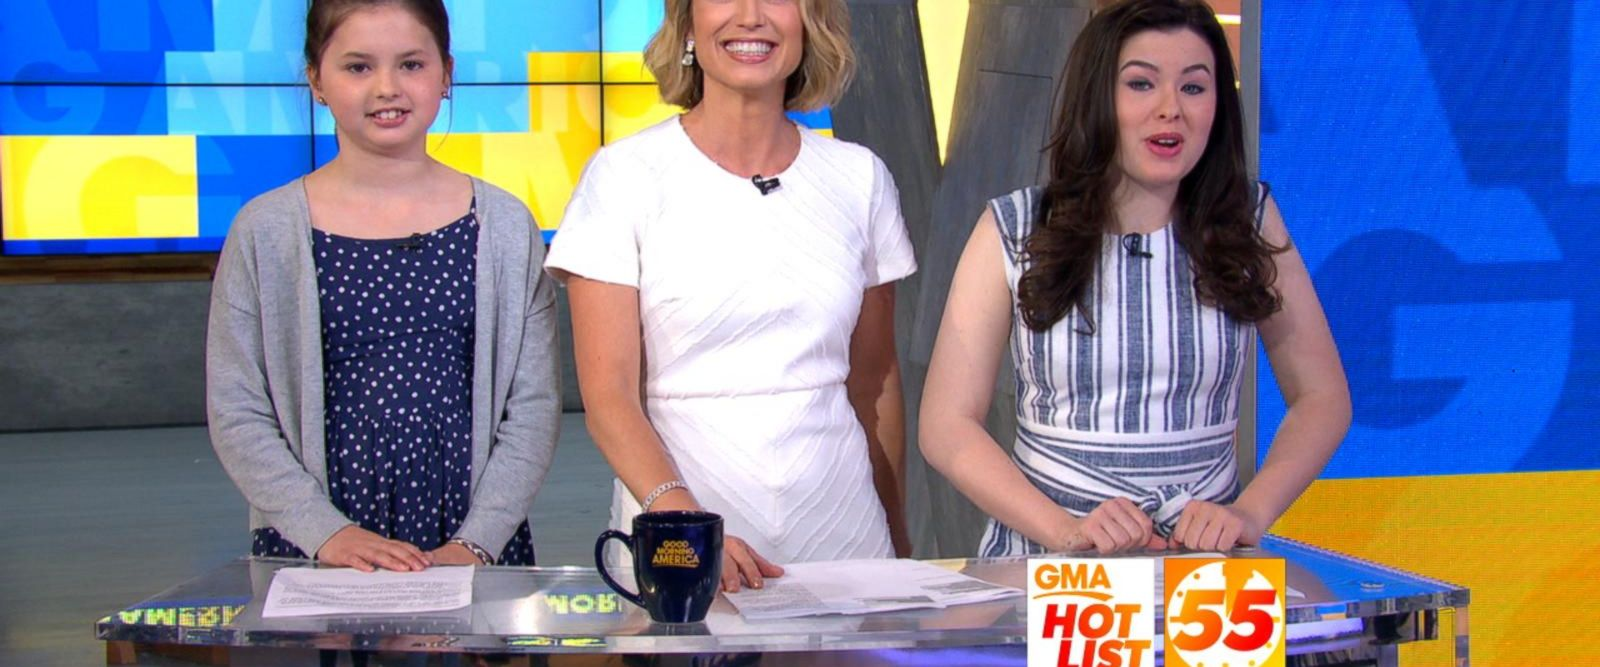 VIDEO: 'GMA' Hot List: Amy Robach and her daughters announce the news on Take Your Kid to Work Day